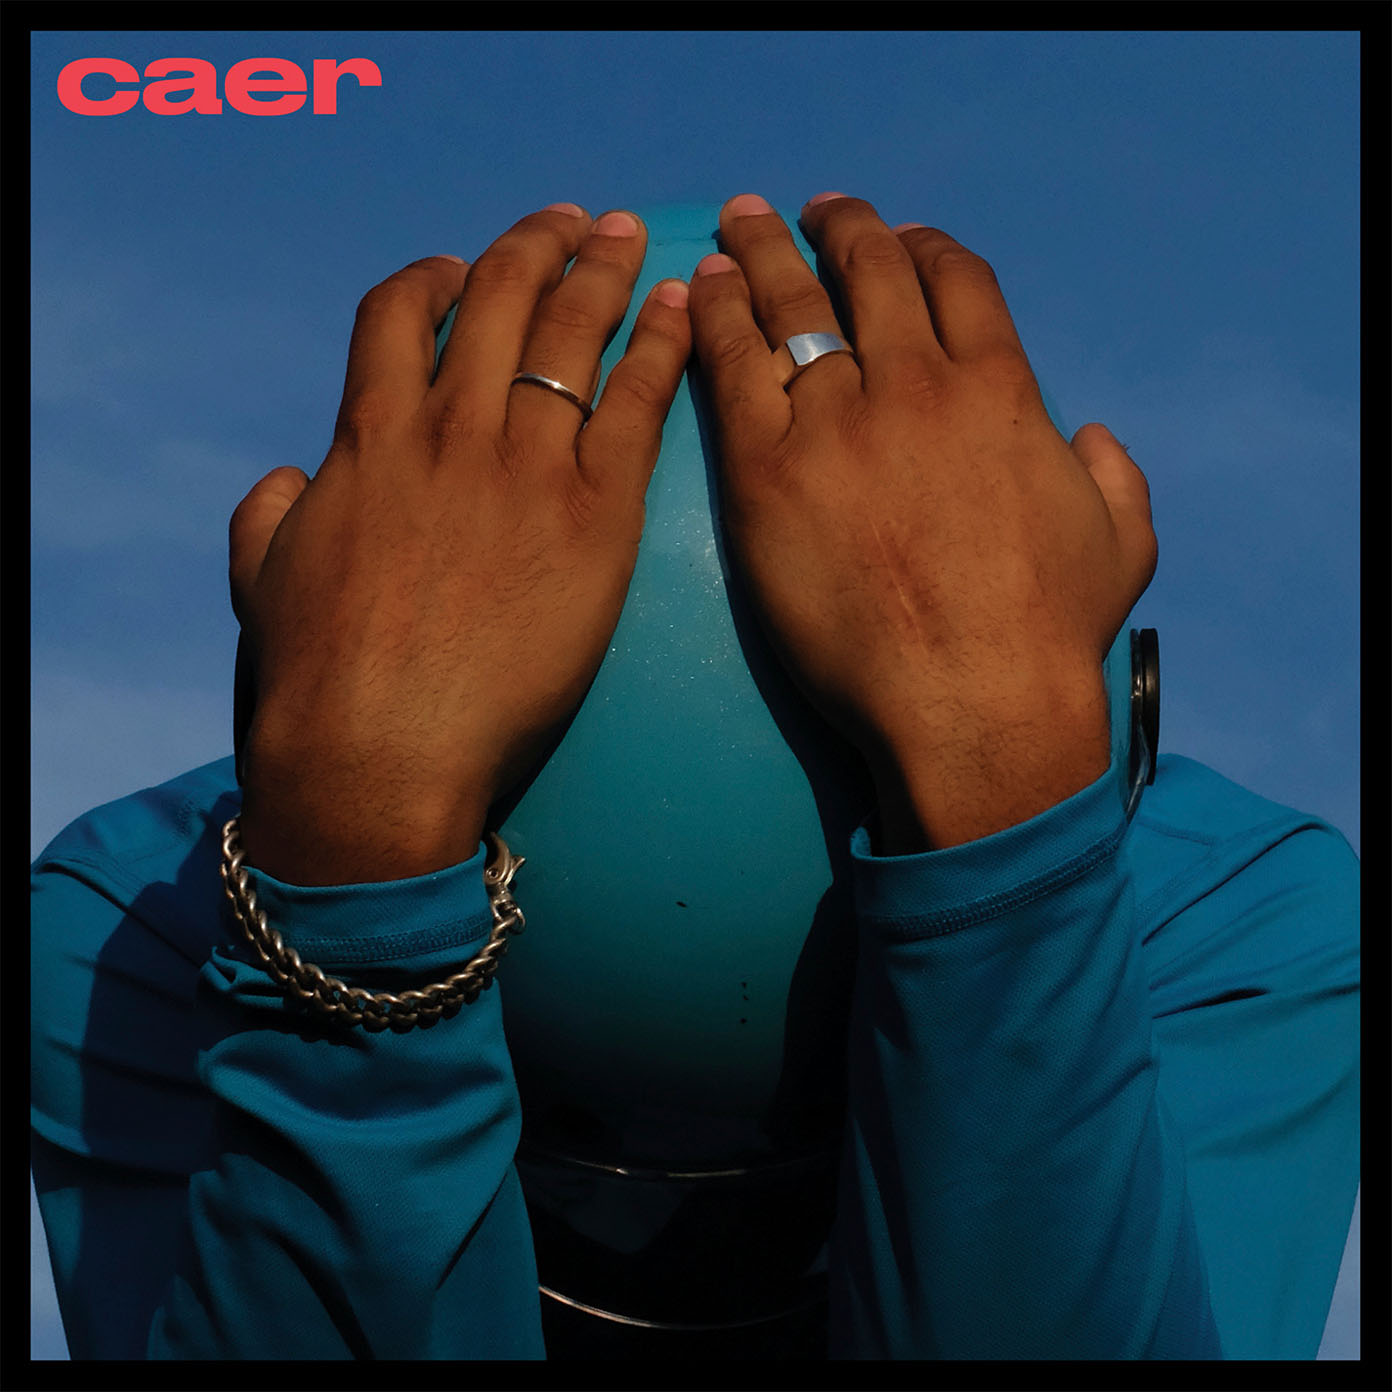 Caer by Twin Shadow